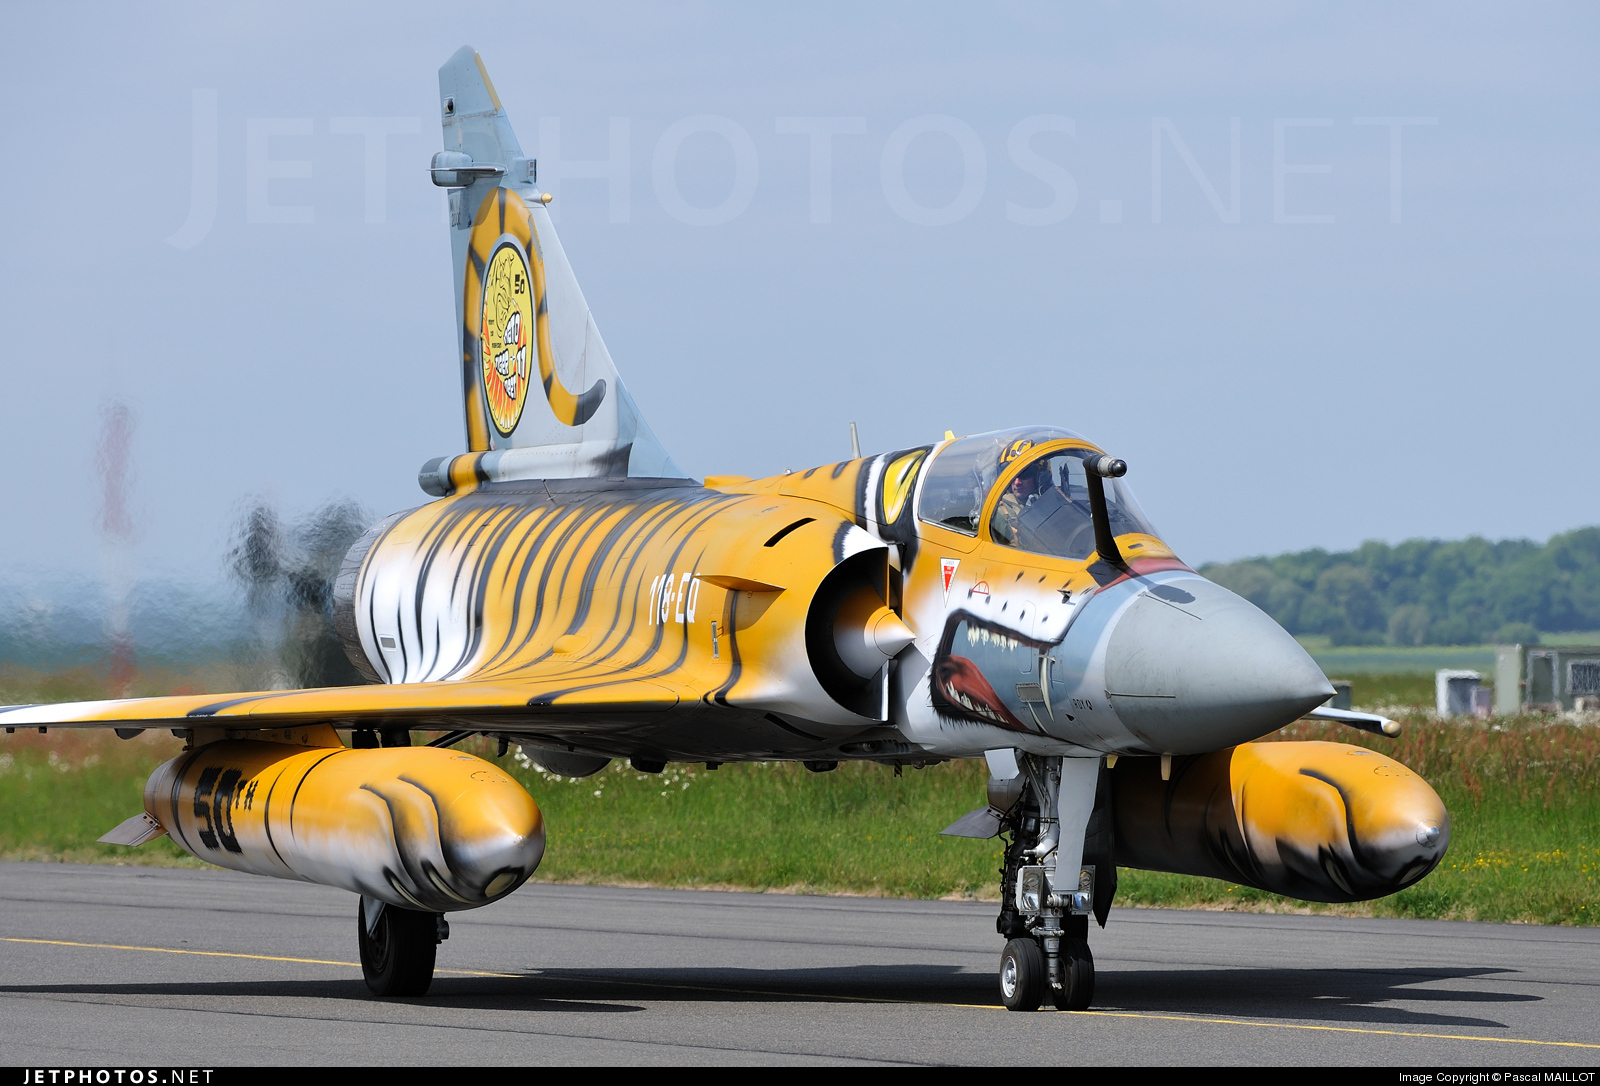 Photo of 44 / 118-EQ Dassault Mirage 2000-5F by Pascal MAILLOT